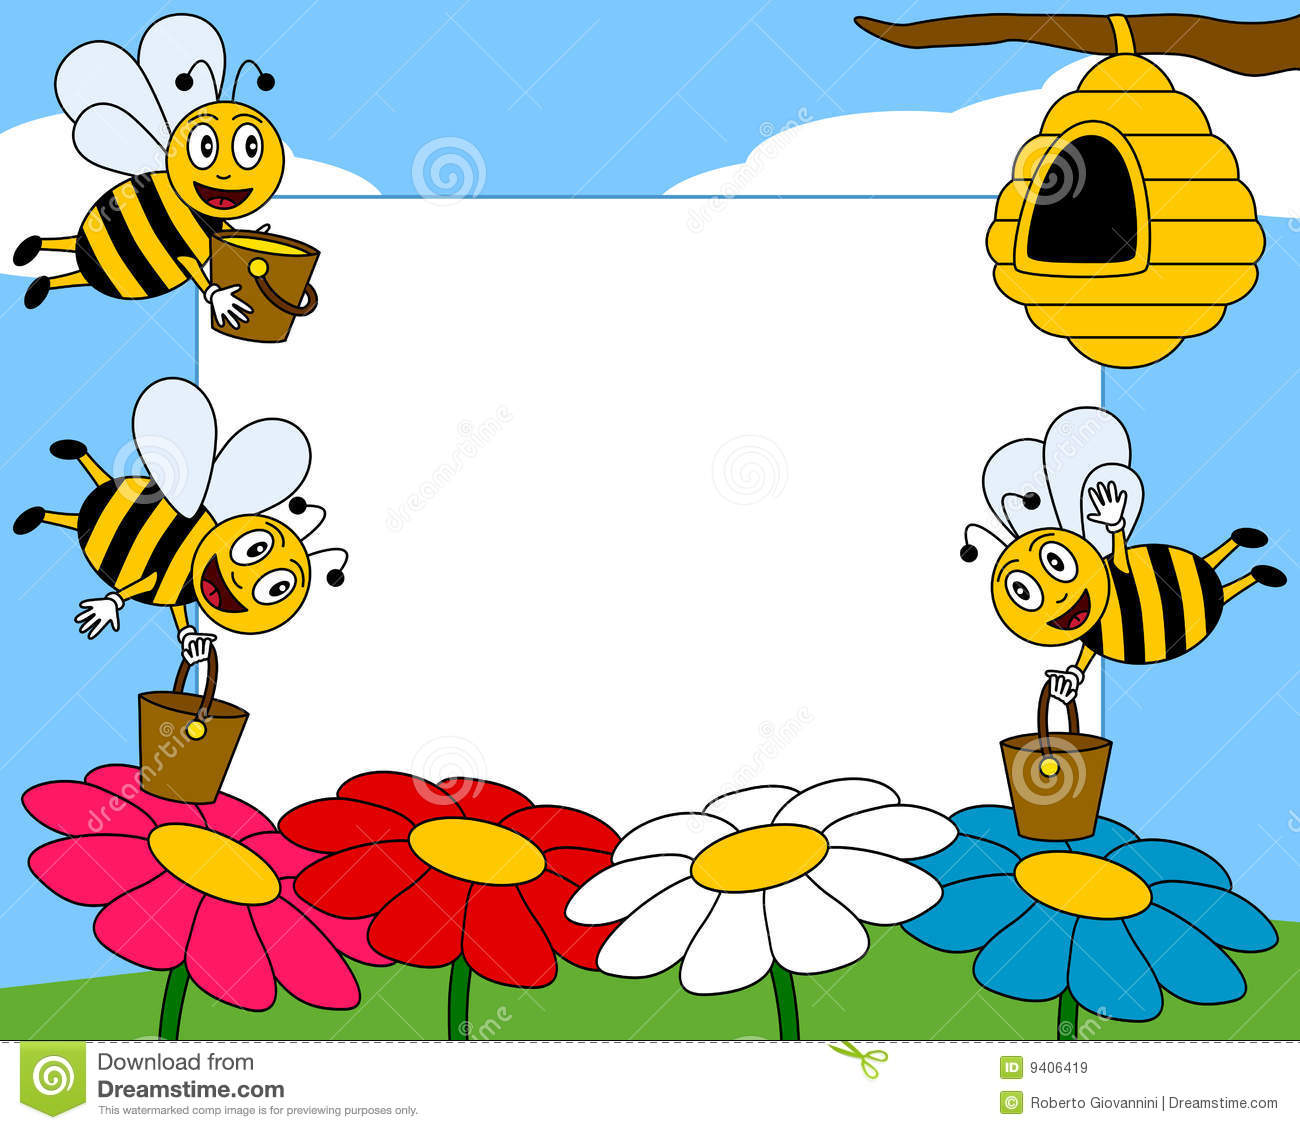 Cartoon Bees Photo Frame [1] Stock Vector - Illustration of artwork ...